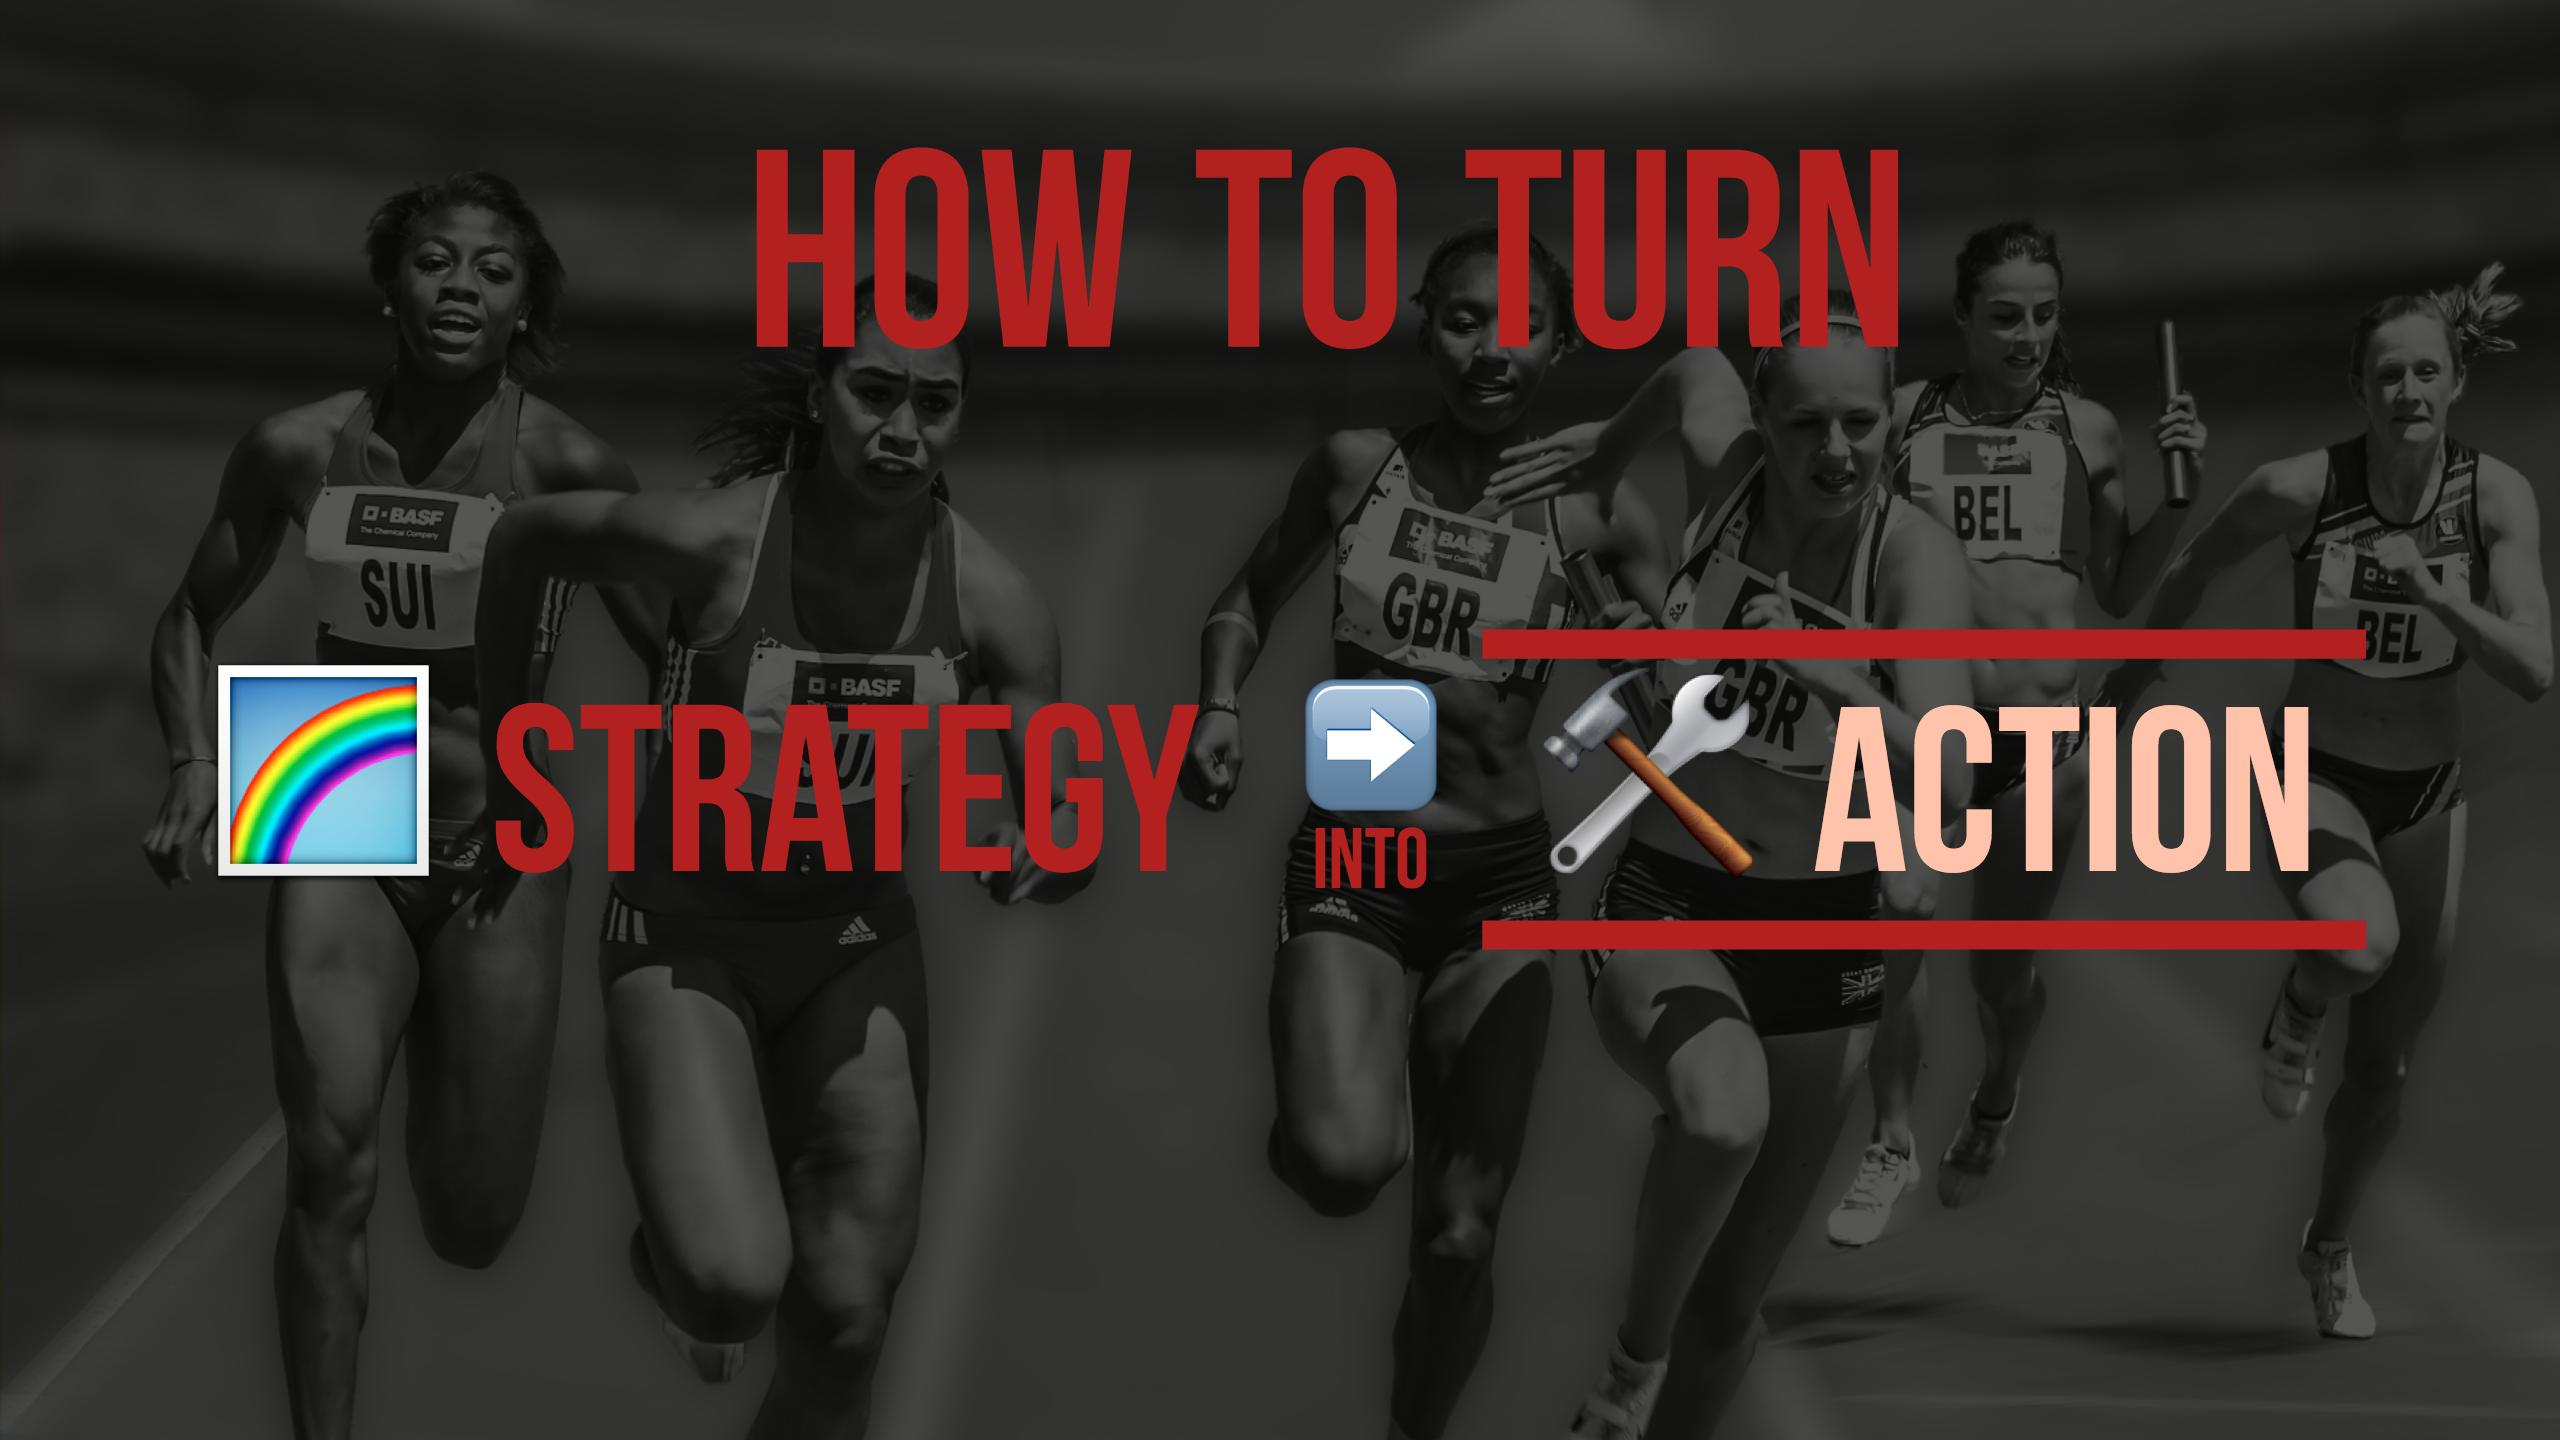 How to Turn Business Strategy into Action